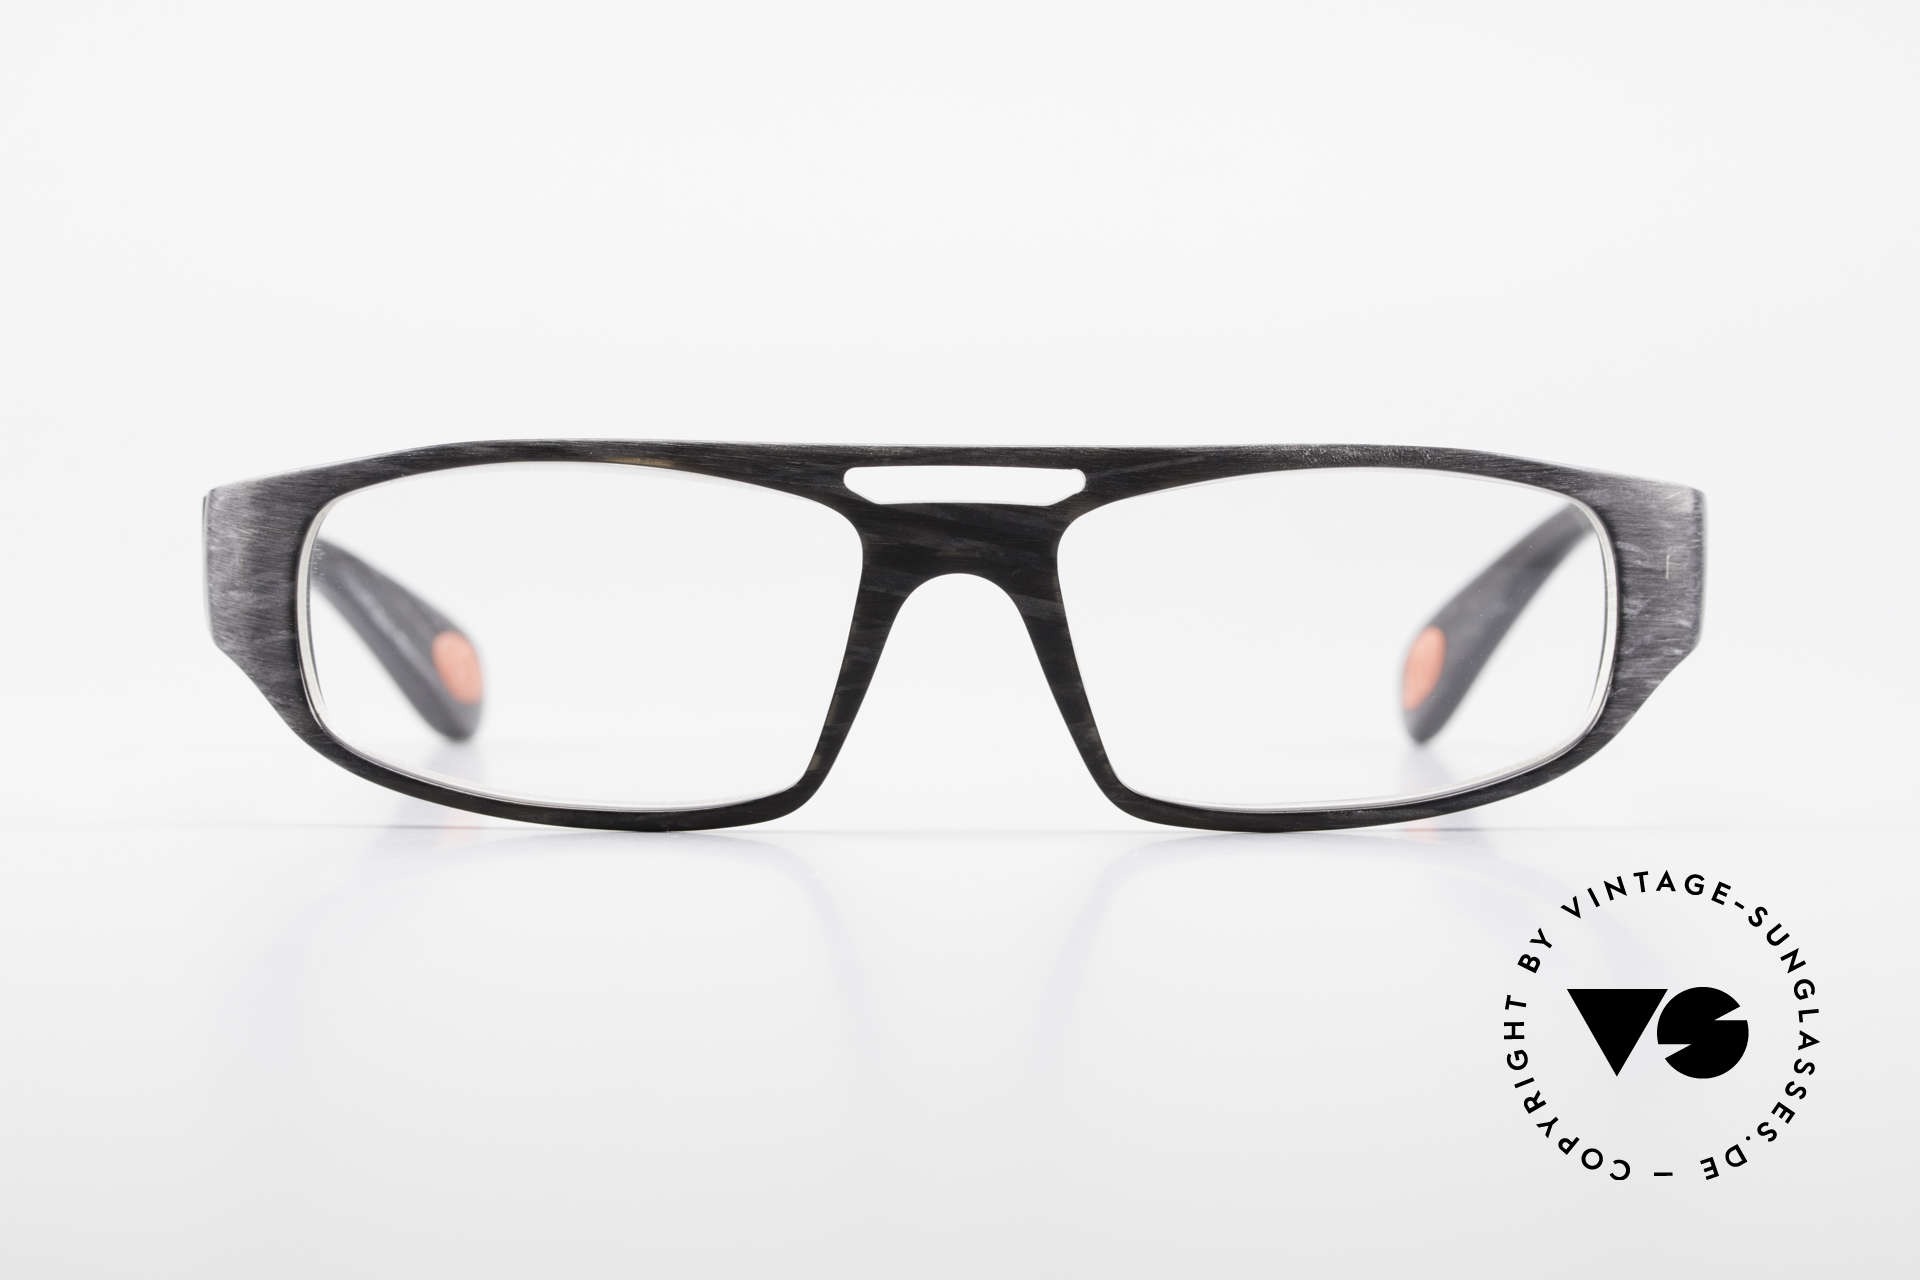 Bugatti 222 Striking Designer Spectacles, TOP-NOTCH quality of all frame components, Made for Men